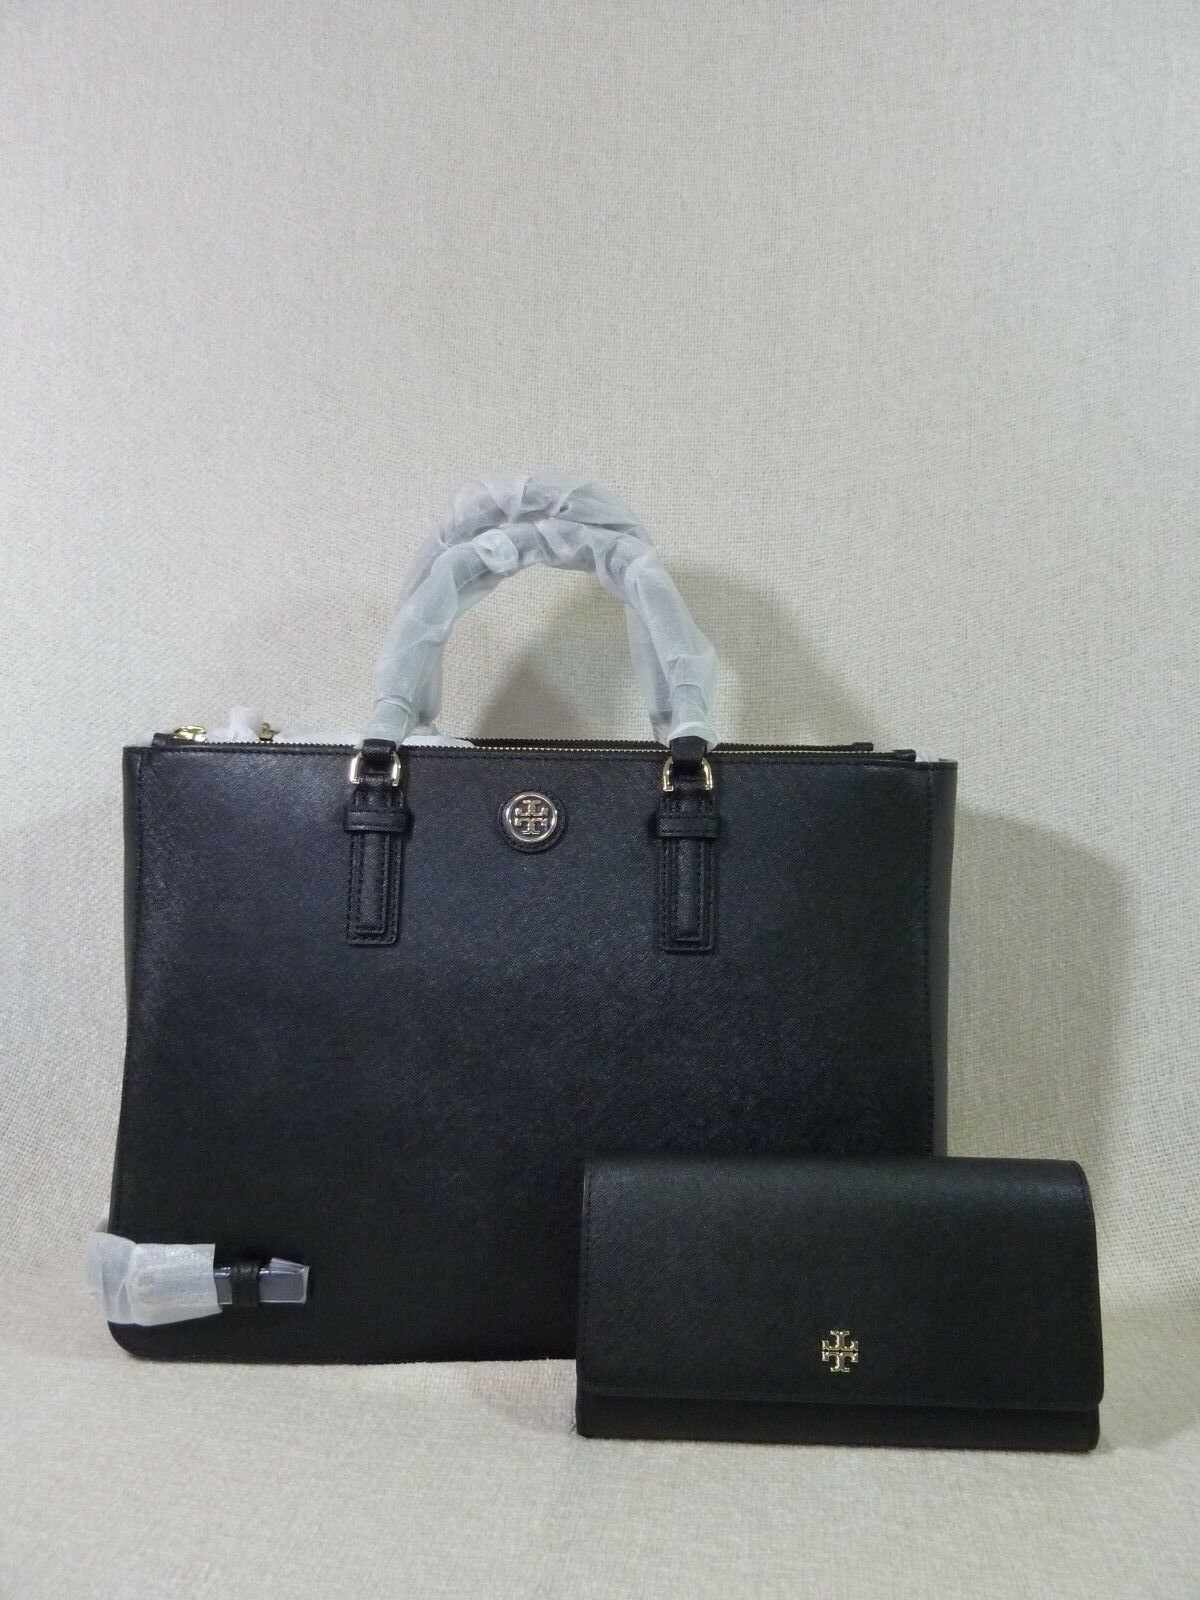 Primary image for NWT Tory Burch Black Saffiano Leather Large Robinson Multi Tote + Wallet